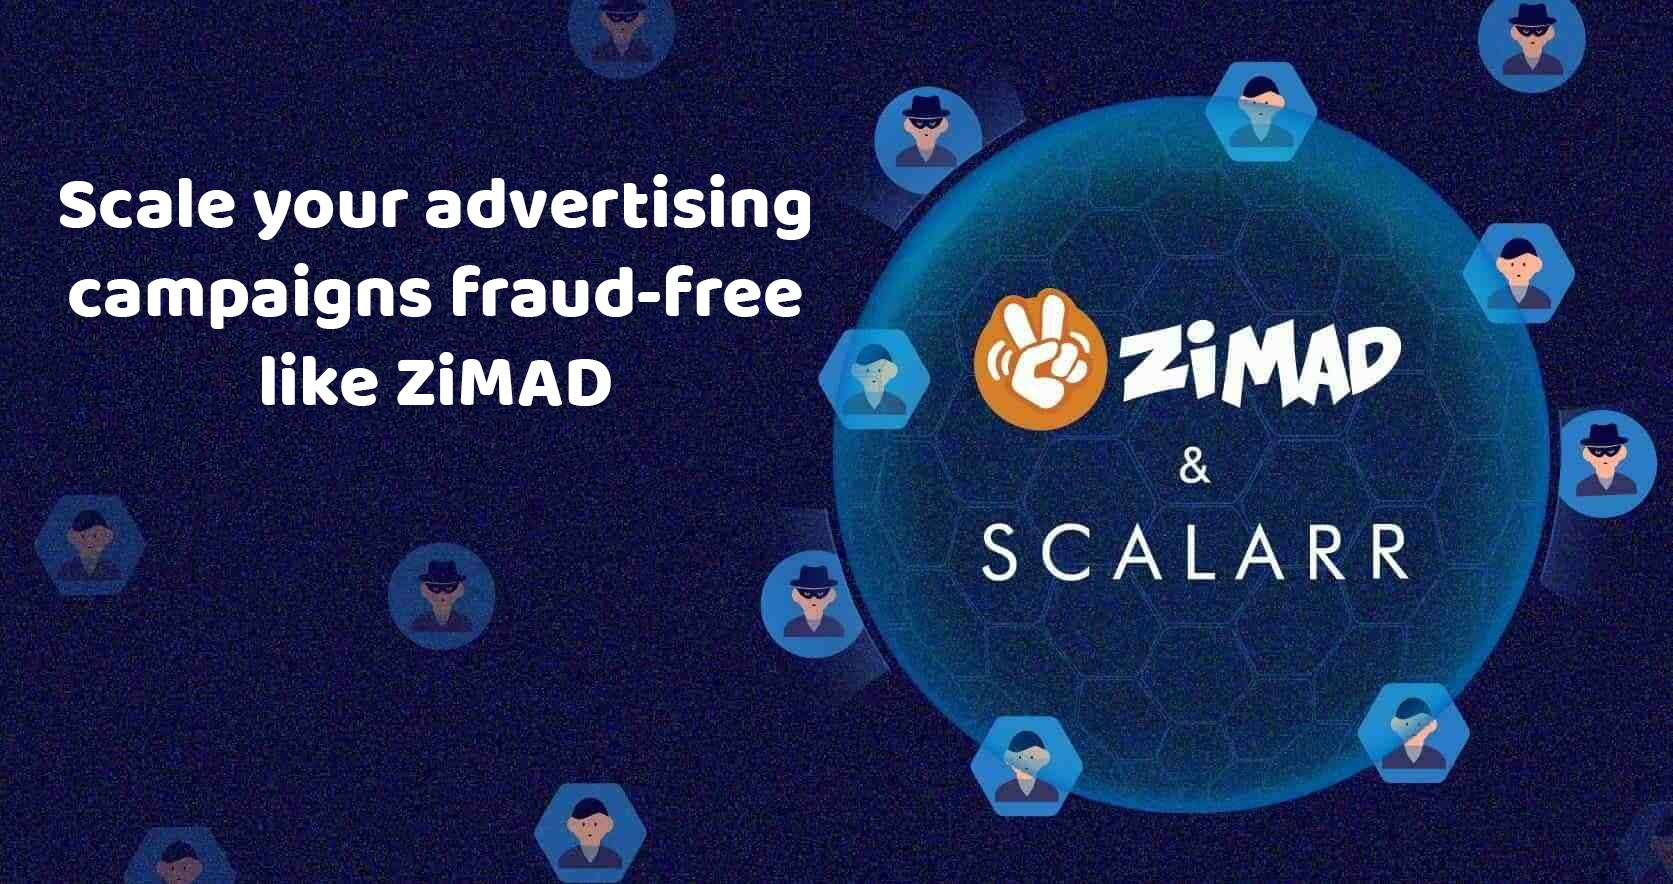 Scale your advertising campaigns fraud-free like ZIMAD